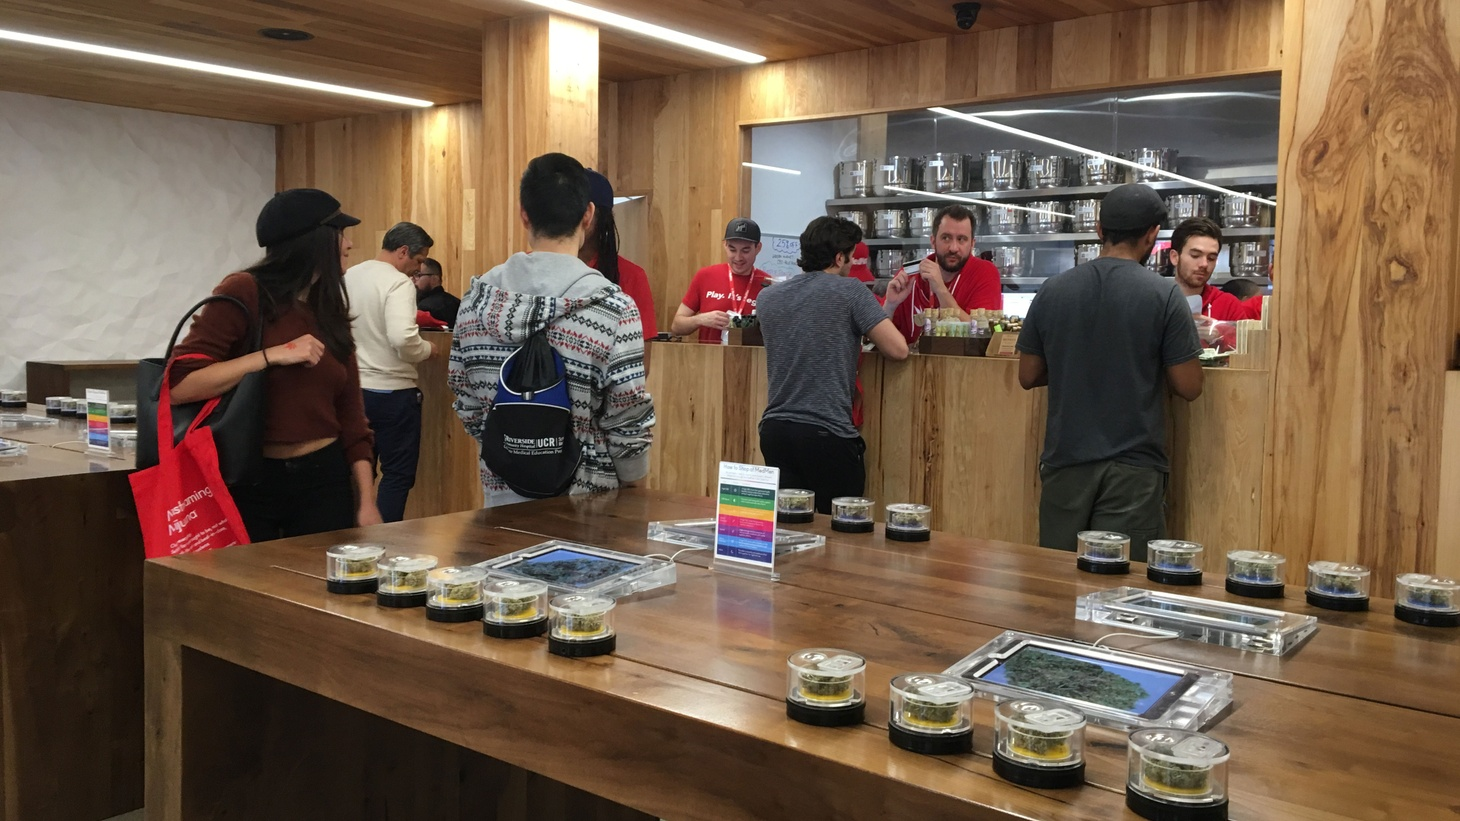 California's recreational pot marketplace is open for business and, already, sales are booming. Take yesterday, for example: marijuana sales jumped more than 300 percent above last month's daily average.